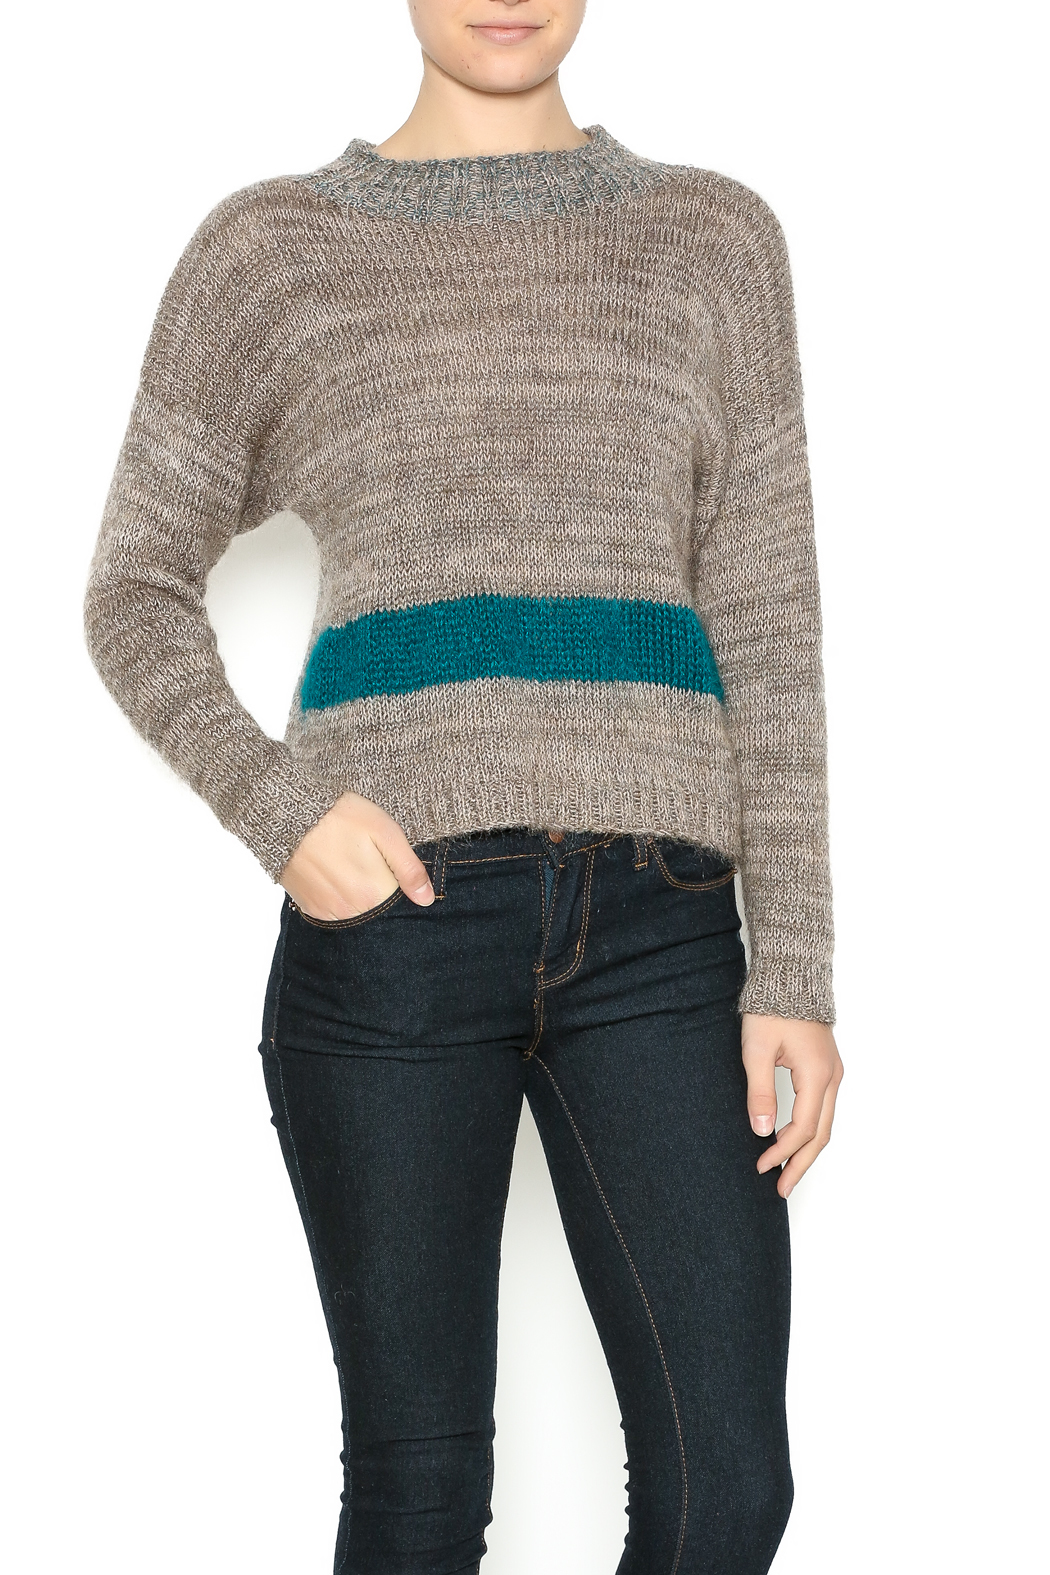 DC KNITS Tan Mohair Sweater - Front Cropped Image